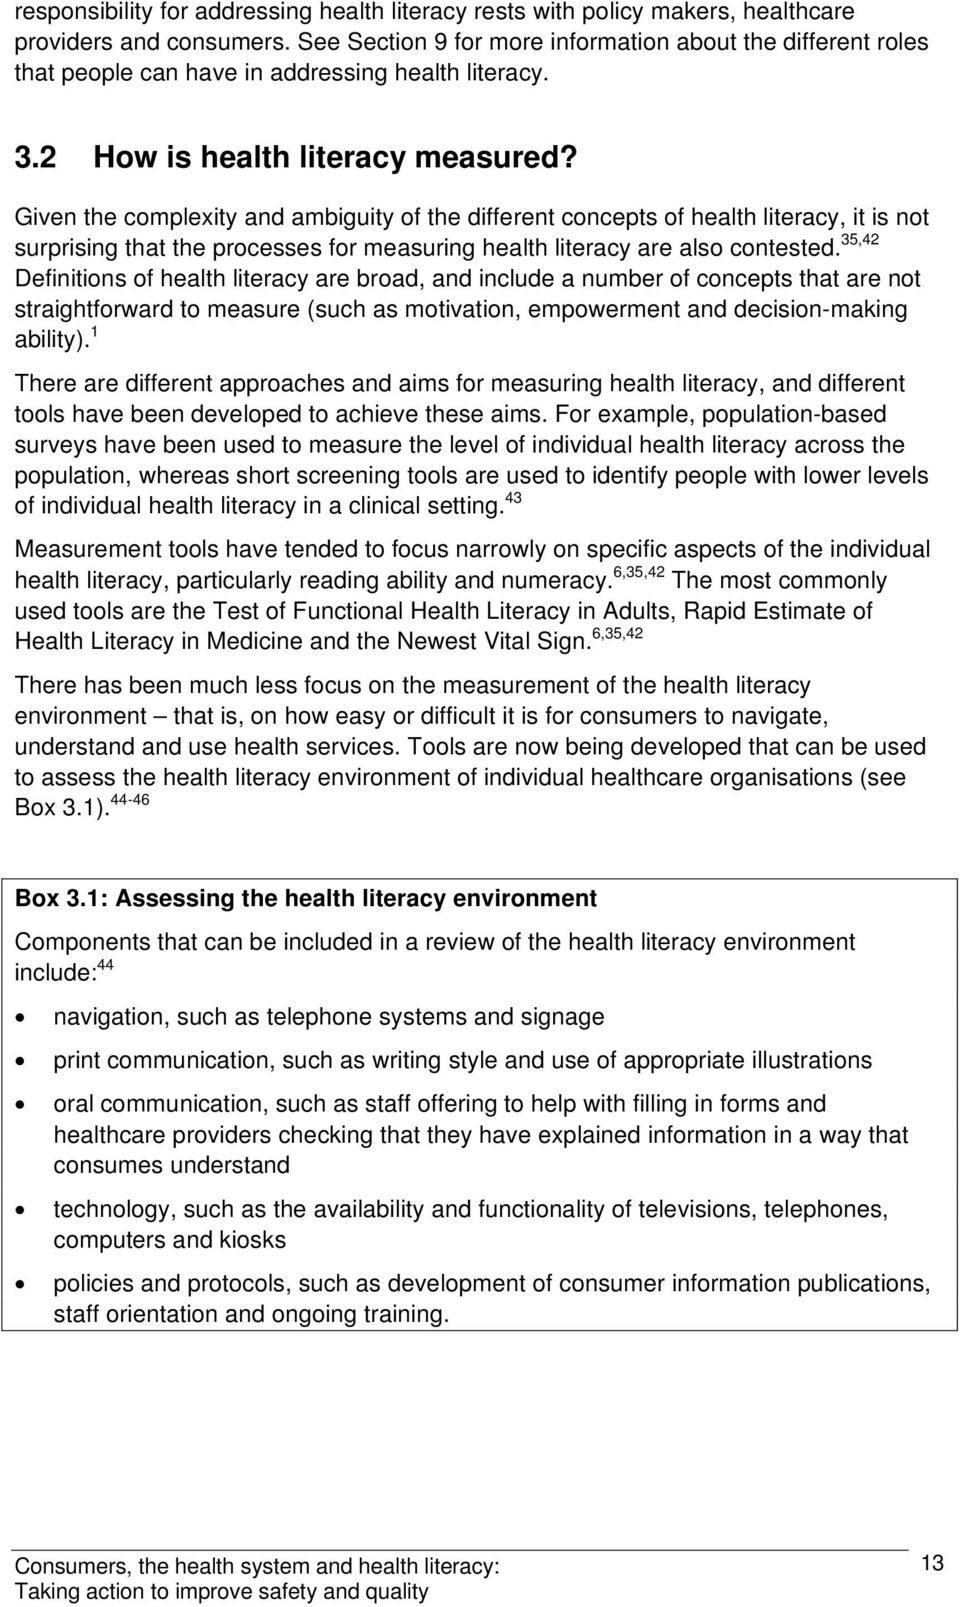 Given the complexity and ambiguity of the different concepts of health literacy, it is not surprising that the processes for measuring health literacy are also contested.